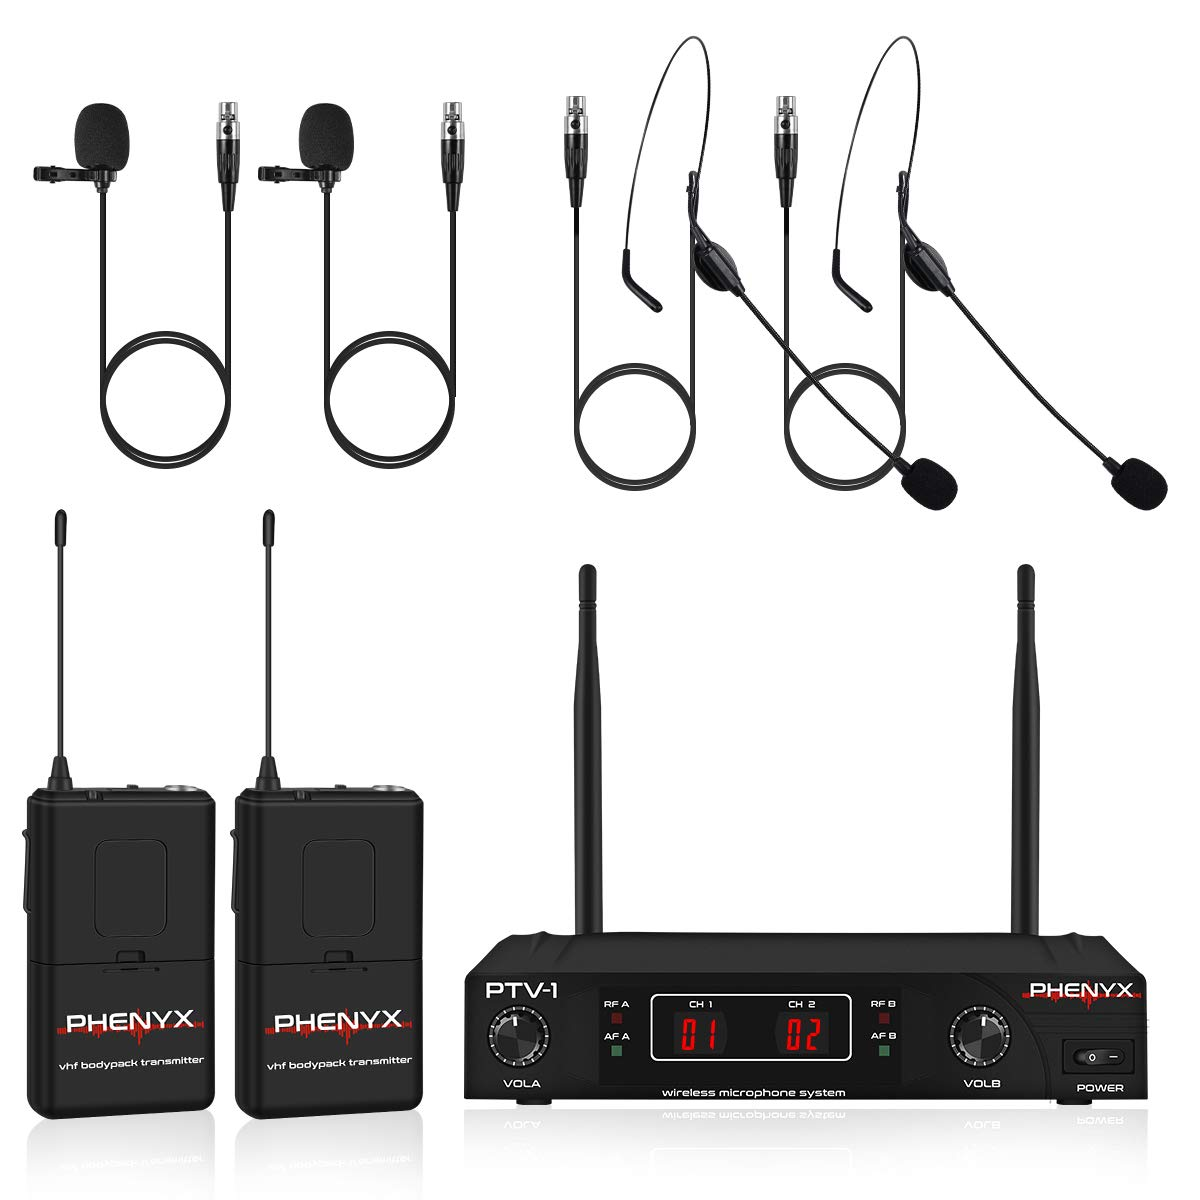 Best for Presentation Church PTV-1D Interference-Free Interview Weddings Phenyx Pro VHF Cordless Mic Set with 2 Headsets+2 Lapels+2 Bodypacks Wireless Microphone System Easy Setup